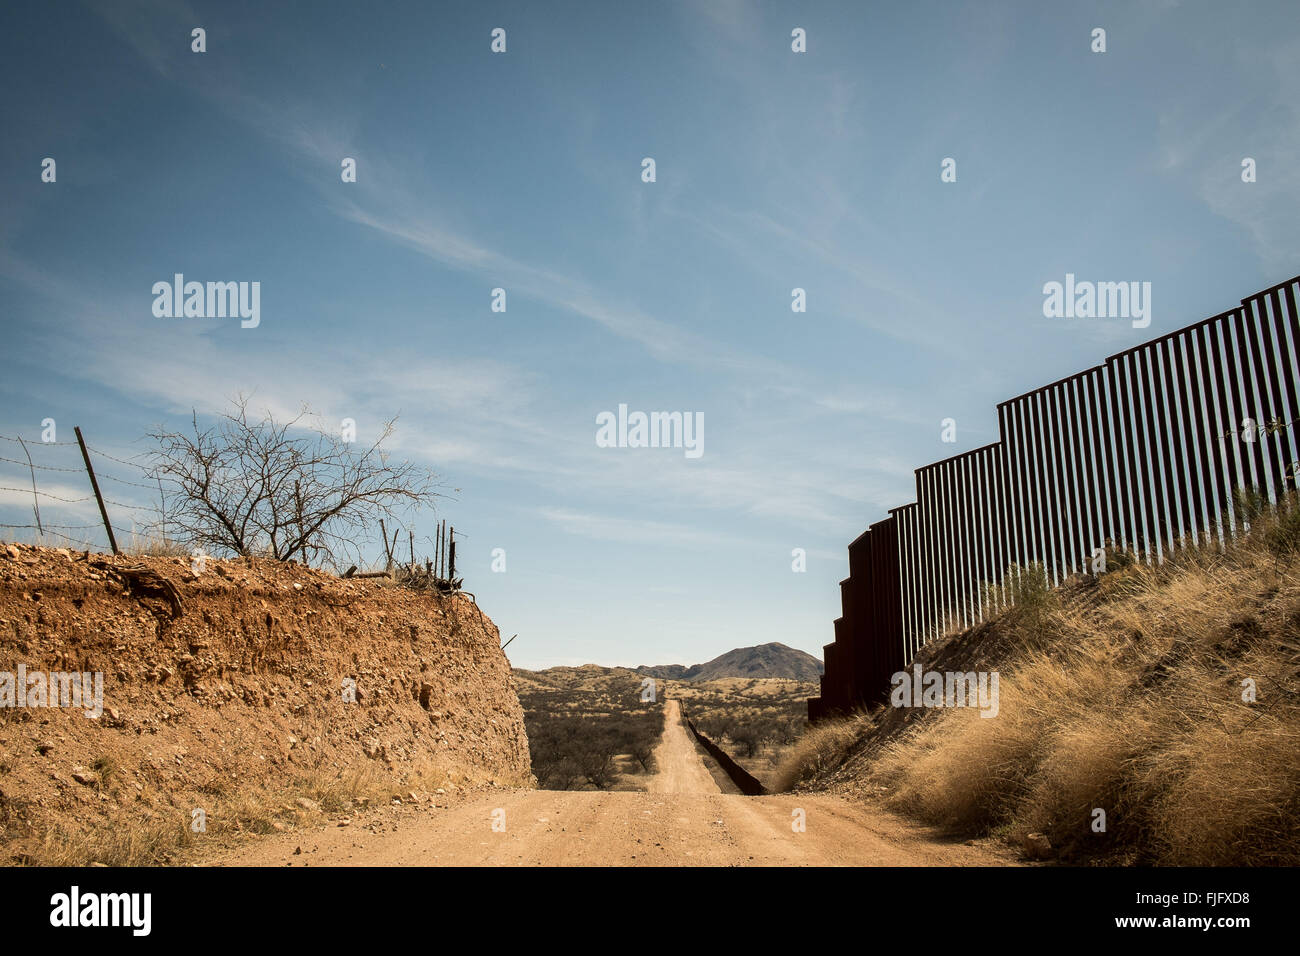 A border patrol road winds along the line of the U.S. Mexico border in southern Arizona - Stock Image